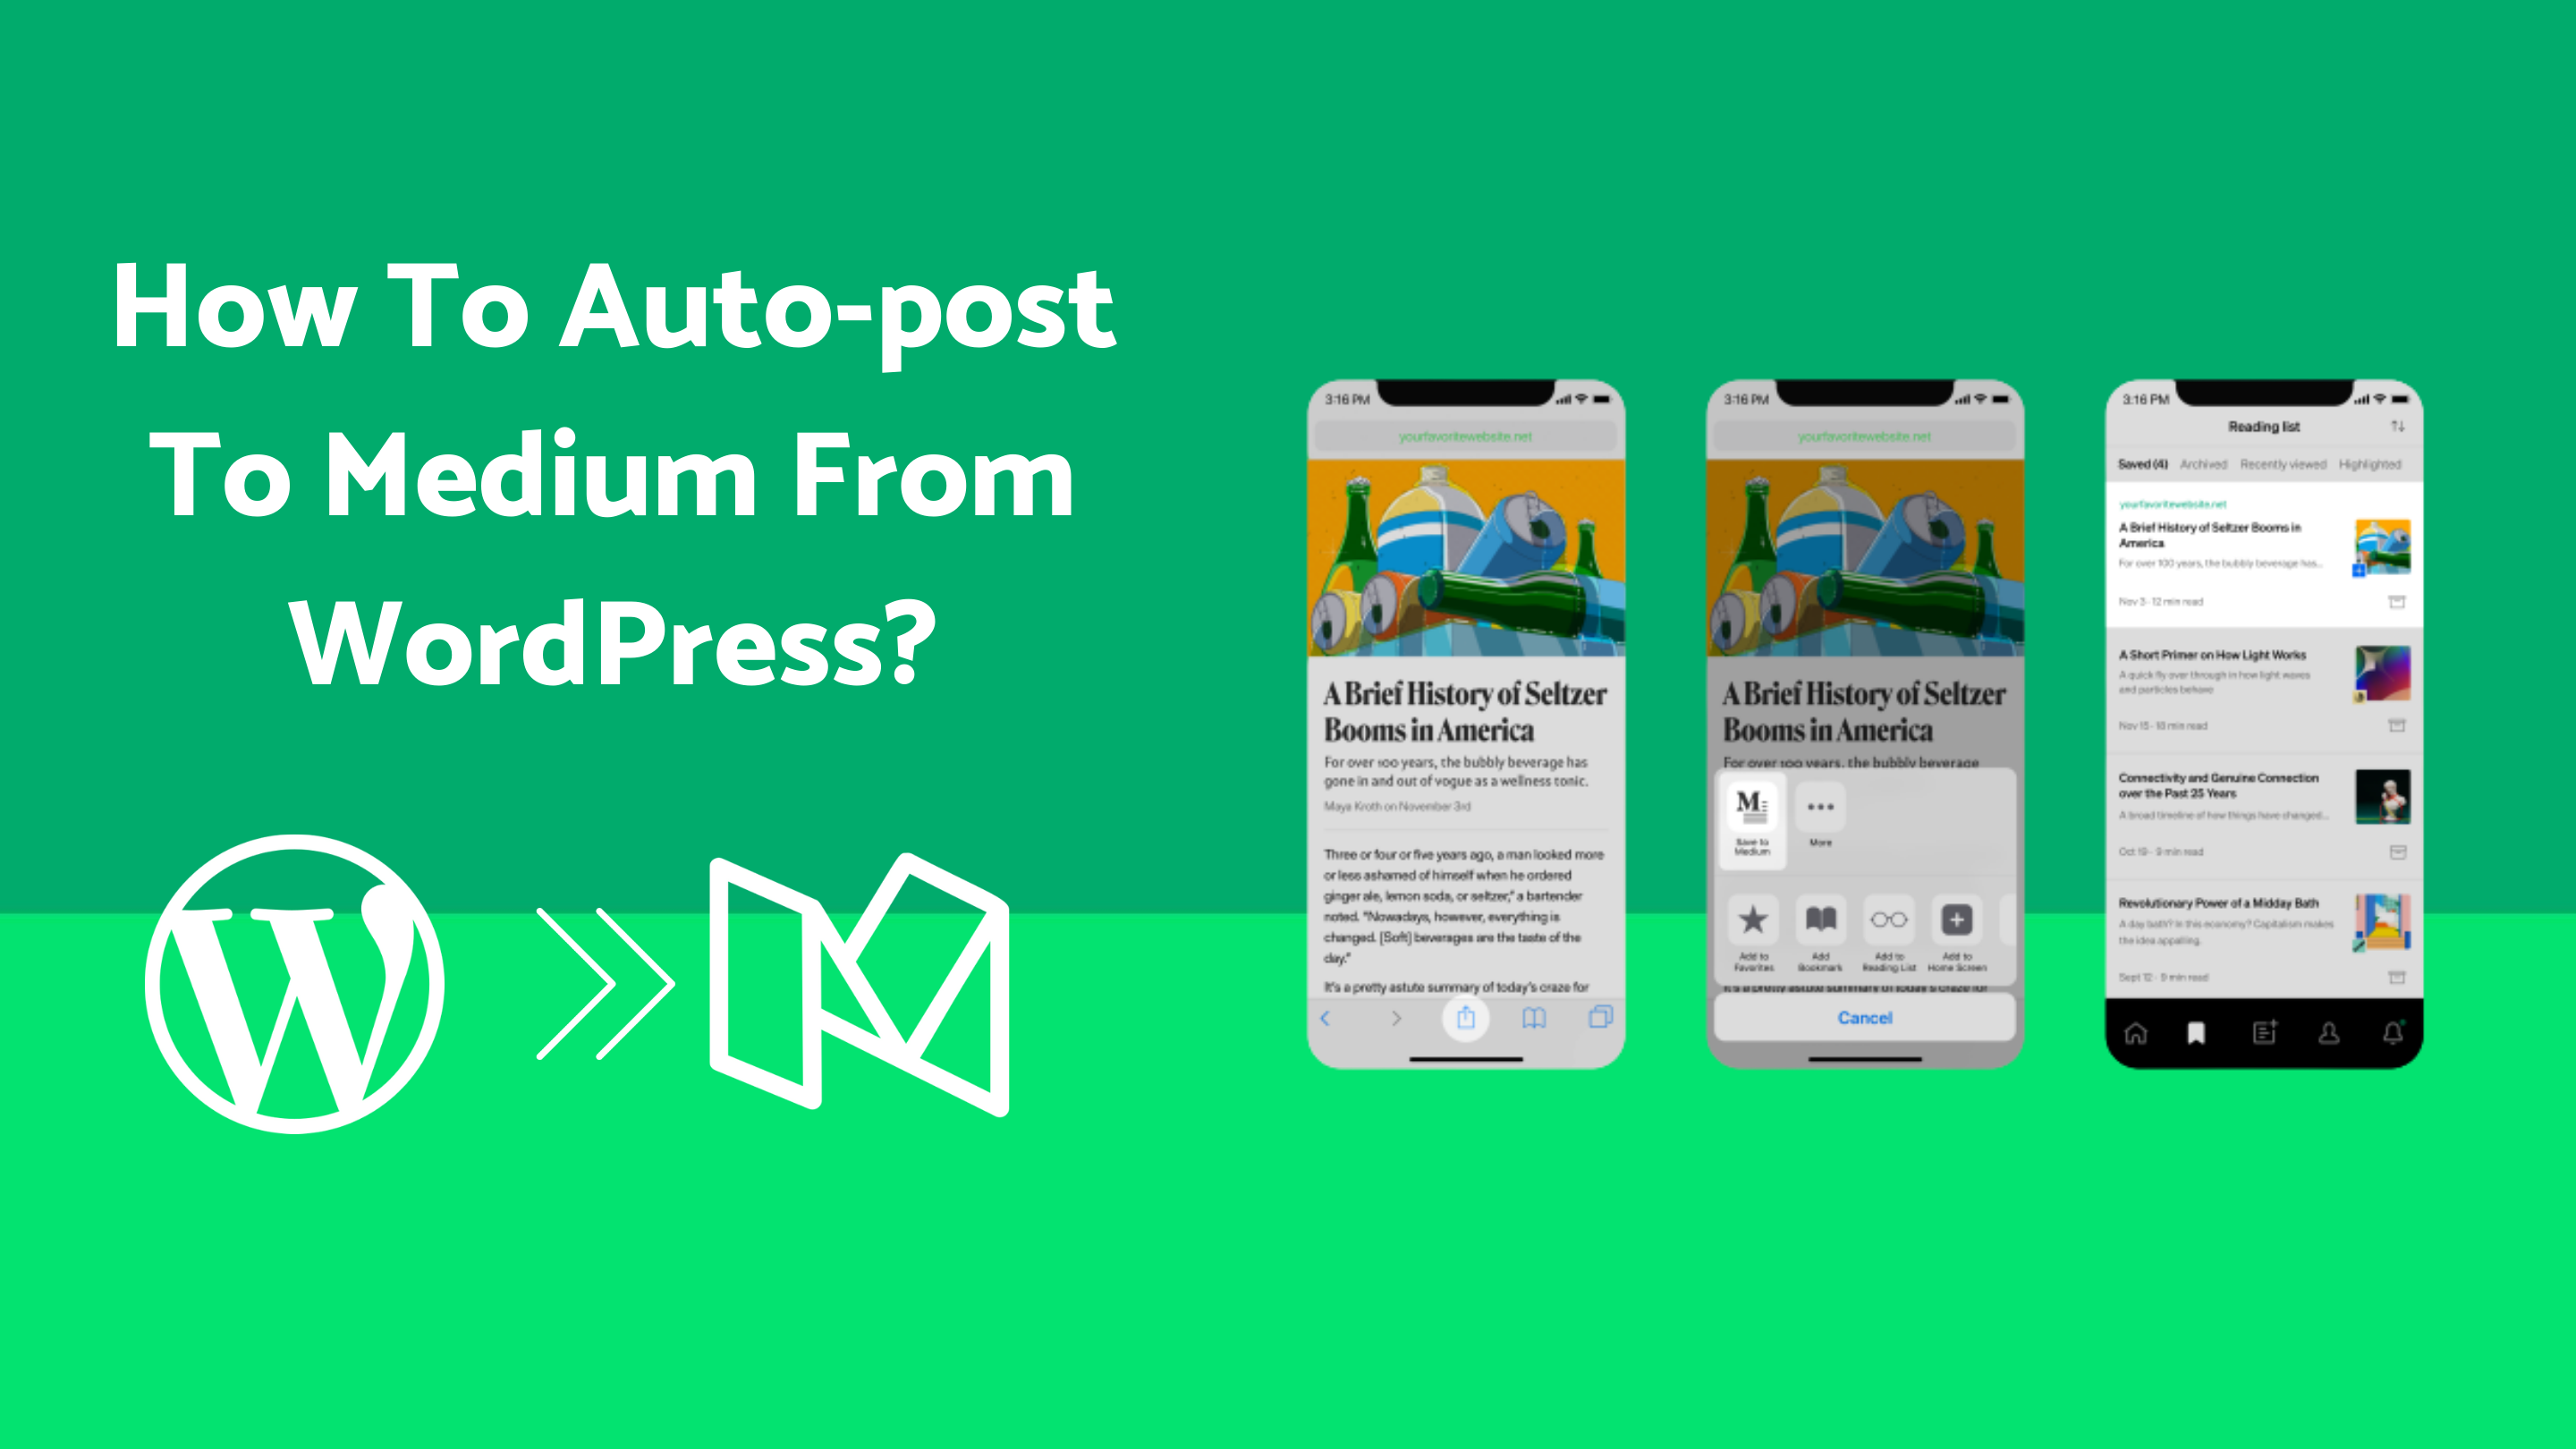 How To Auto-Post To Medium From WordPress [A Complete Guide]